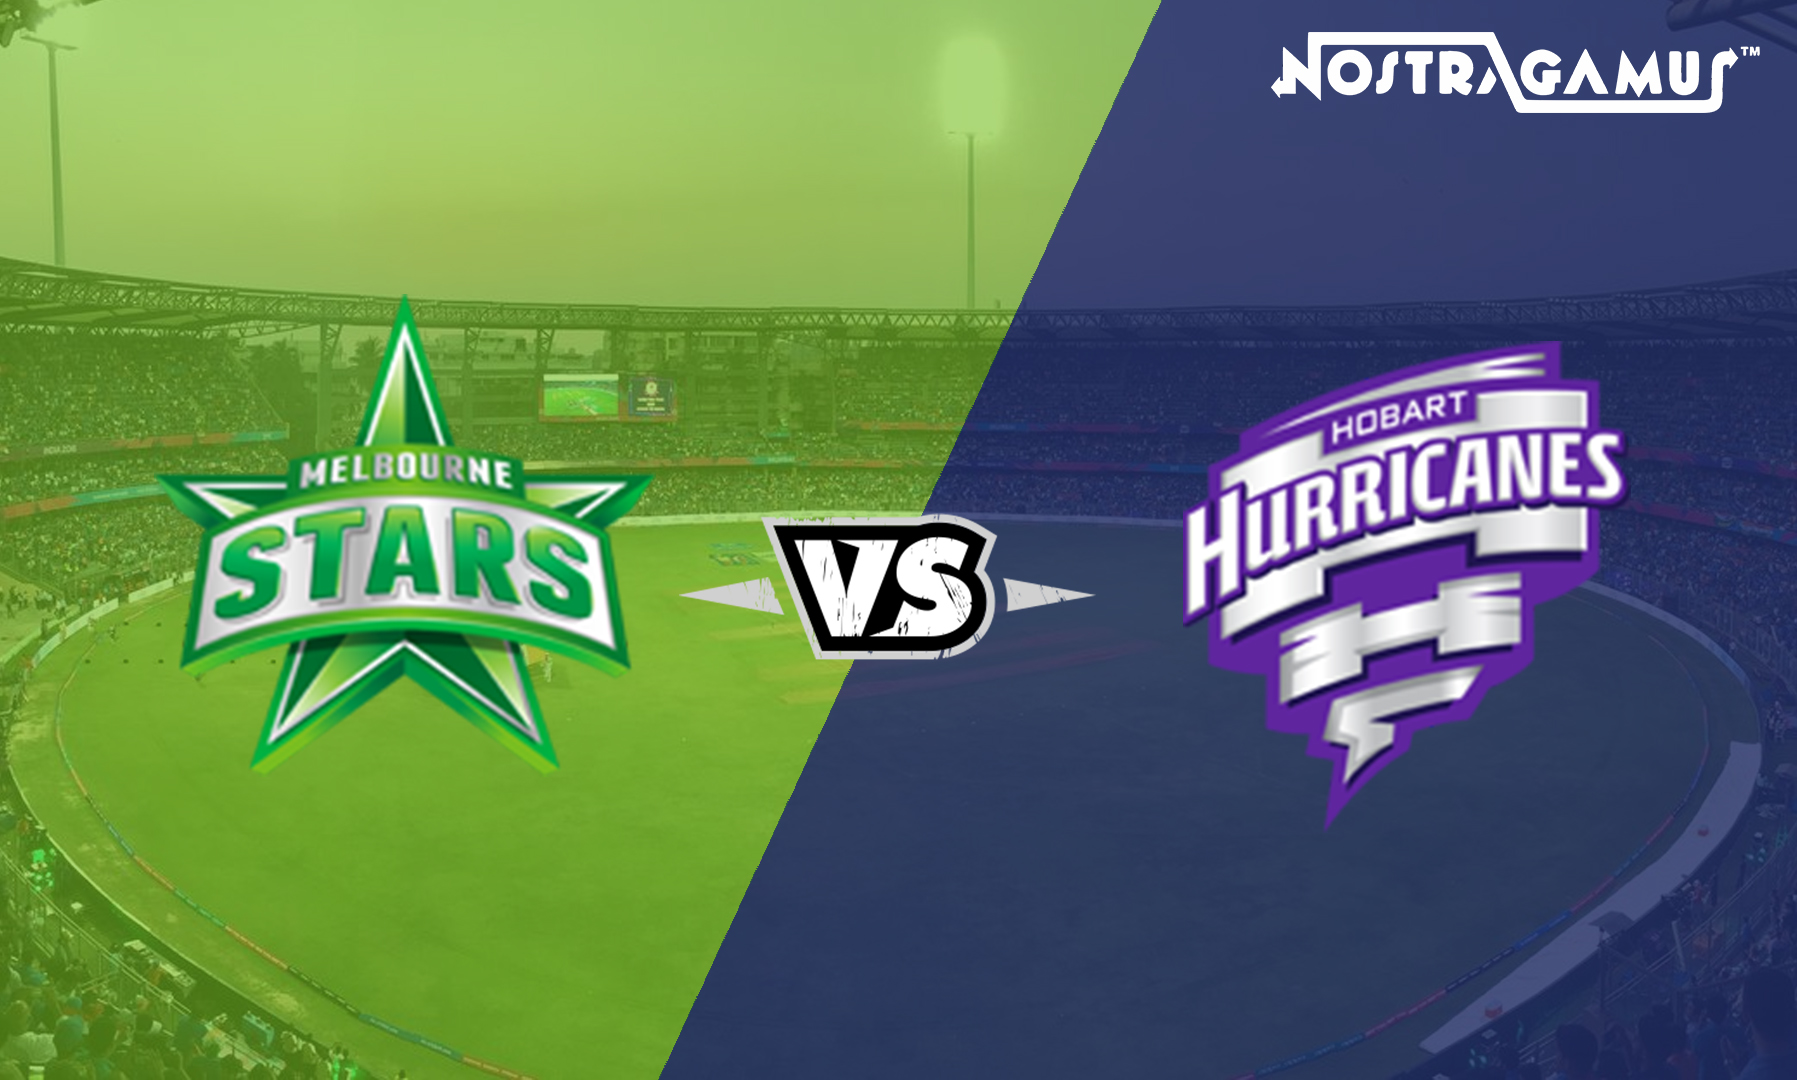 BBL 2019 Match Prediction: Hobart Hurricanes vs Melbourne Stars